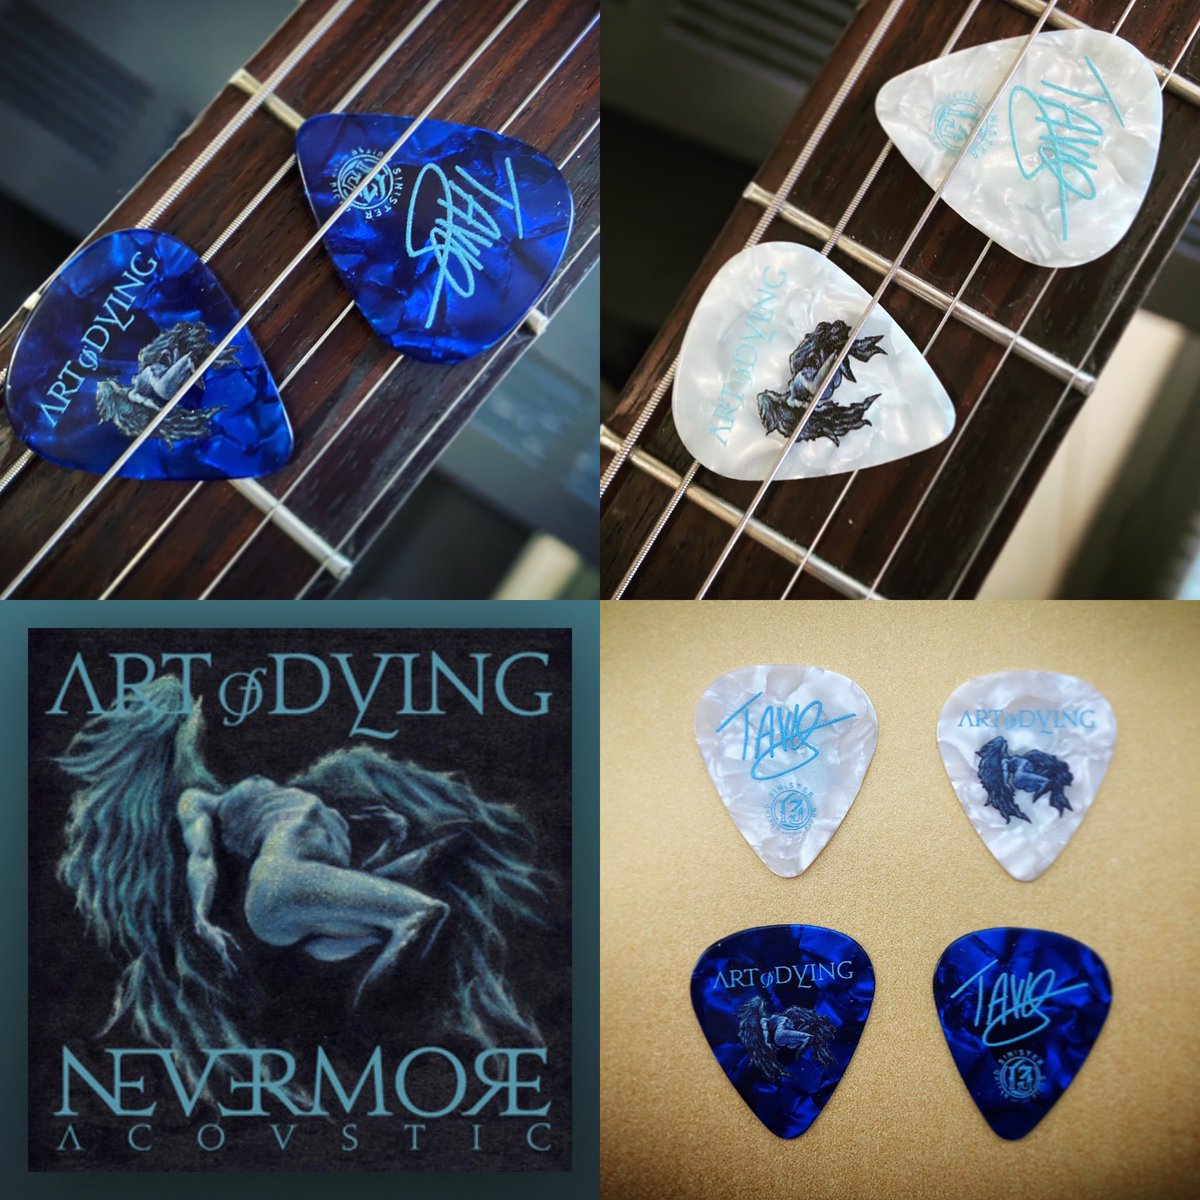 New blue and white picks are in the merch store featuring the Nevermore Acoustic art by NY artist @StefanoLosi   GET EM ==> https://t.co/8IvQjdV2ty  STREAM IT ==> https://t.co/aJIoaaUKEC  #sinisterguitarpicks https://t.co/PoG8qgTusm